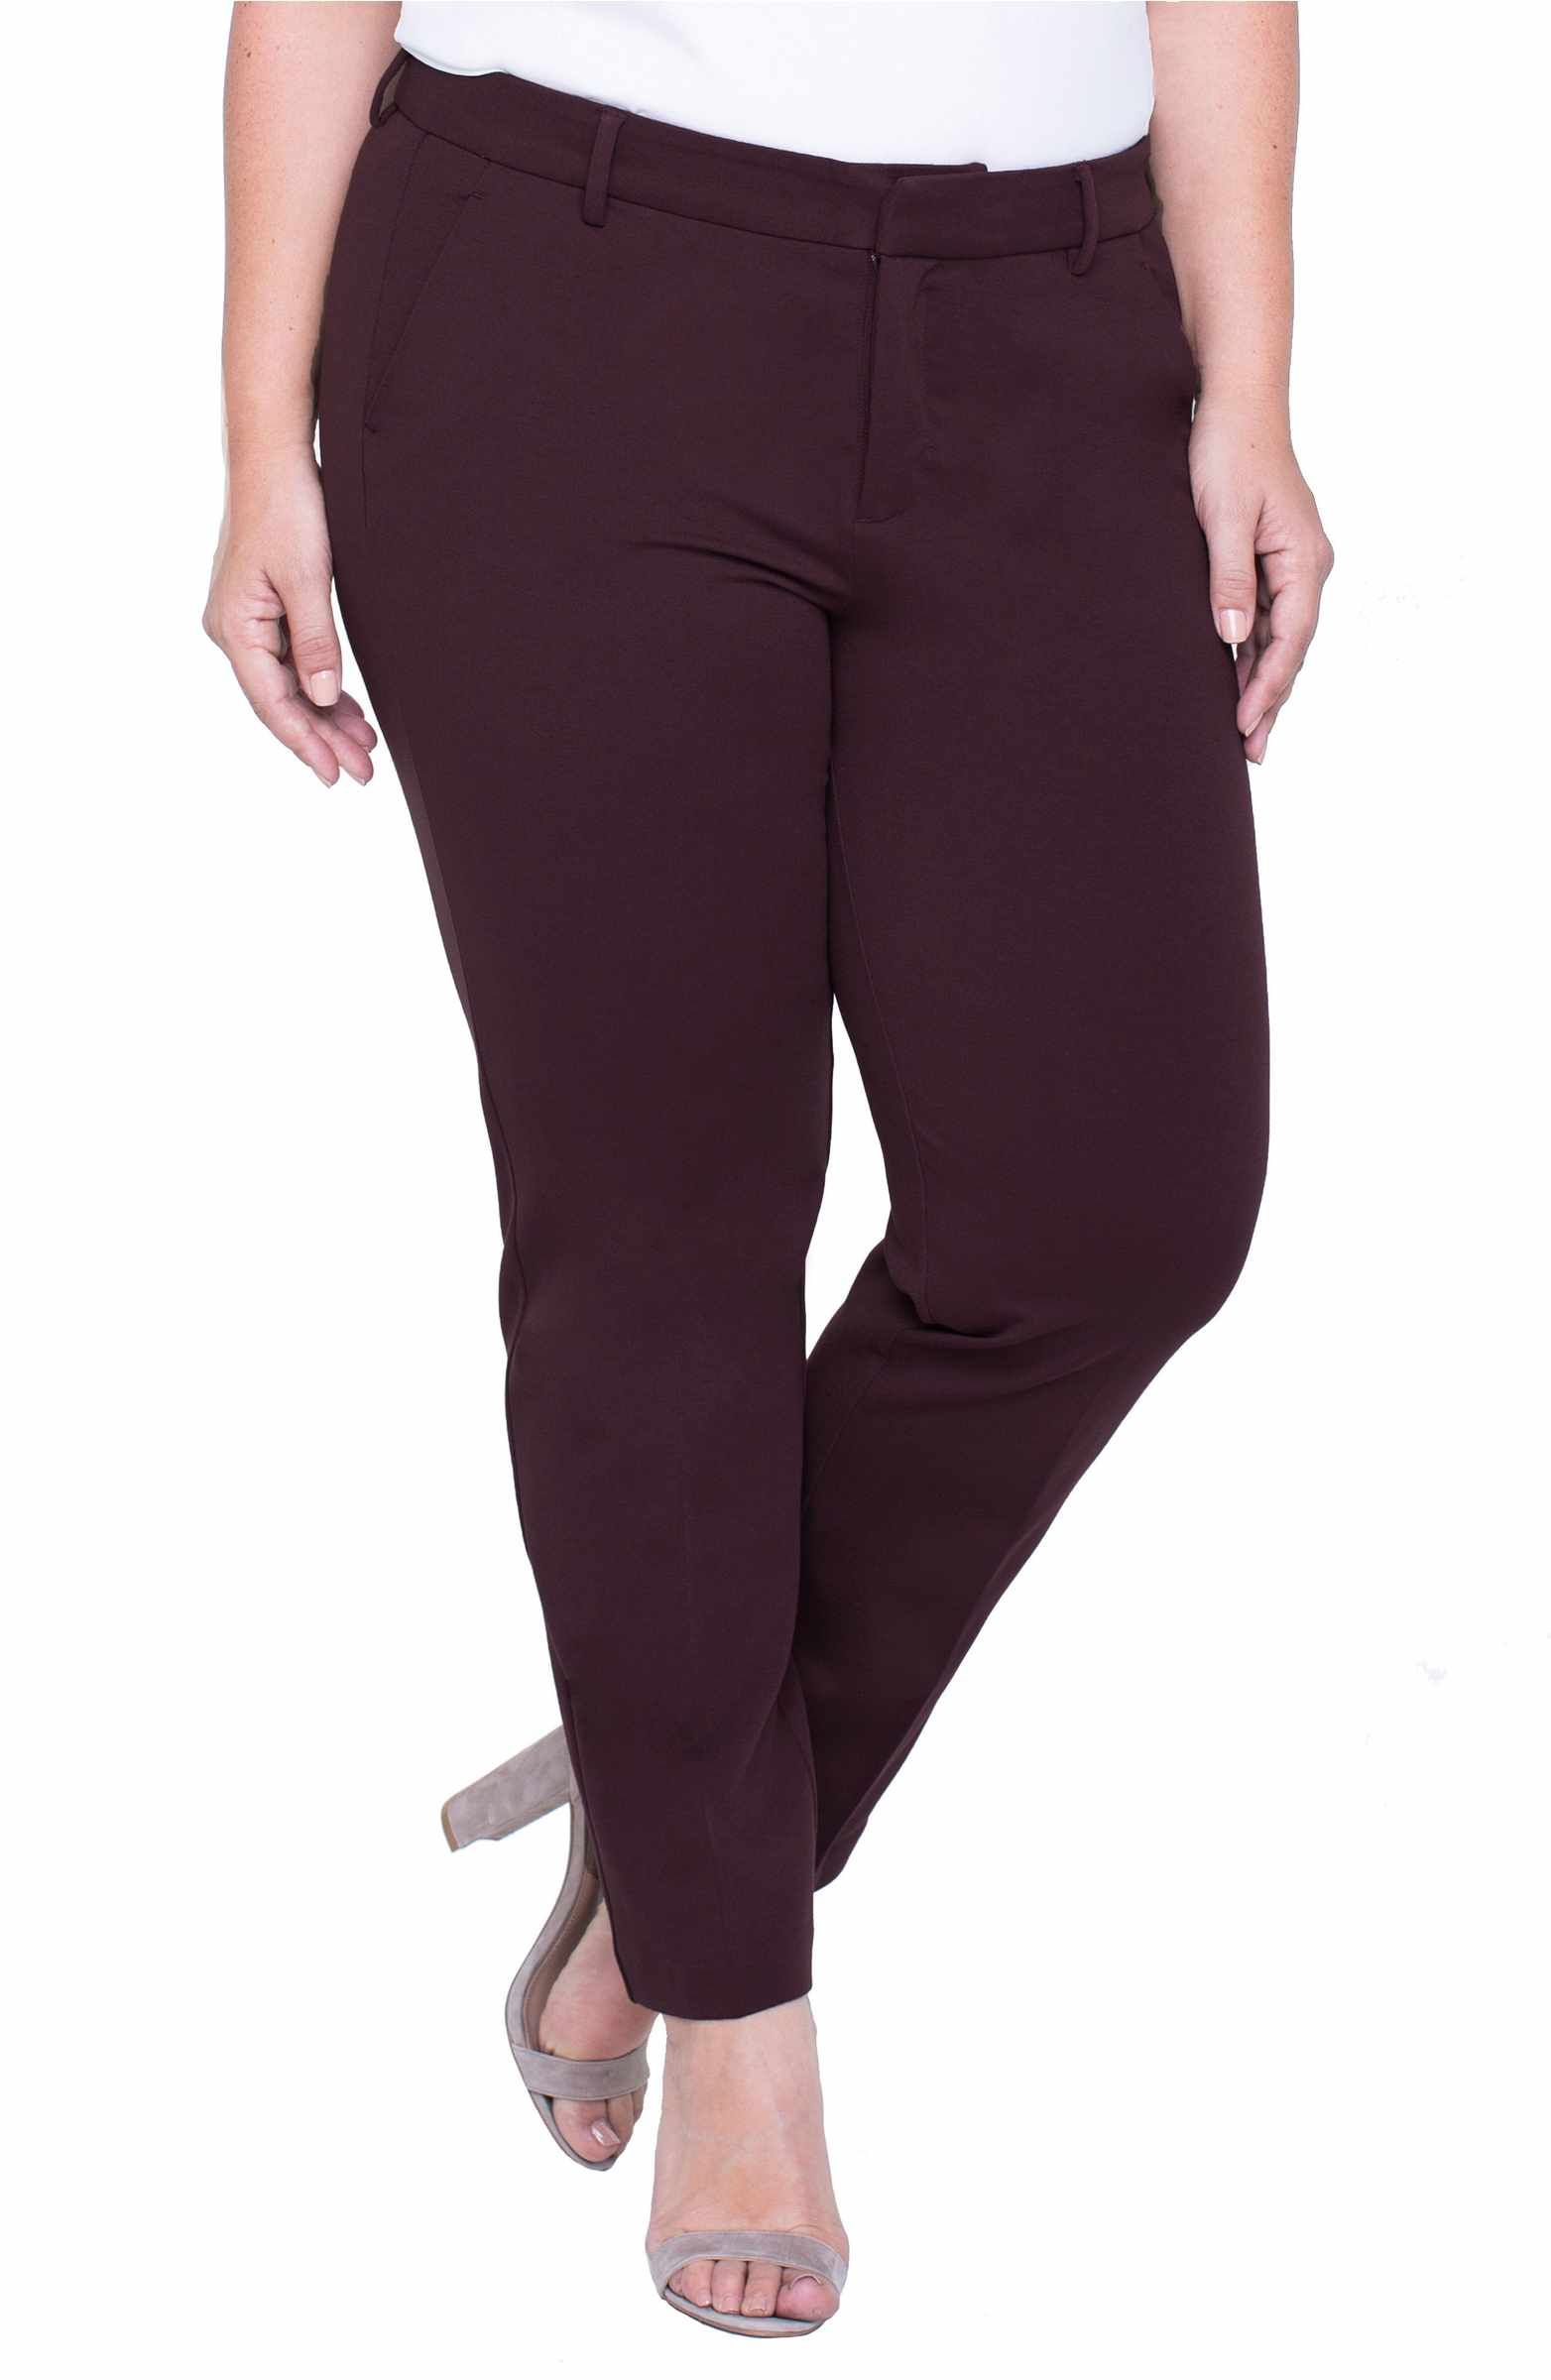 Main Image Liverpool Jeans Company Kelsey Ponte Knit Trousers Plus Size Ponte Knit Liverpool Jeans Work Wardrobe Staples